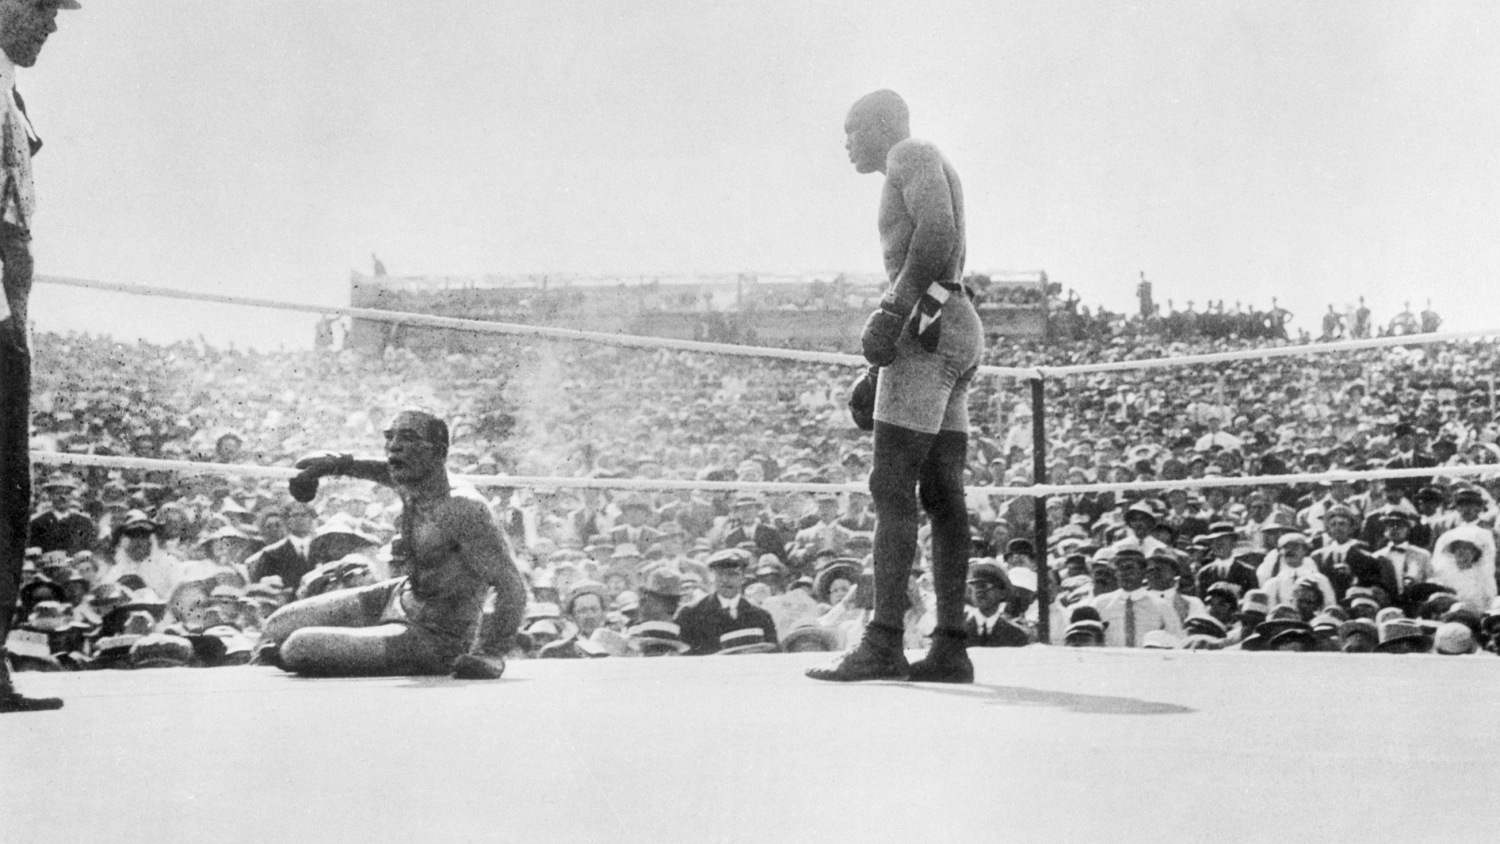 Jack Johnson In Ring With Fallen James Jeffries